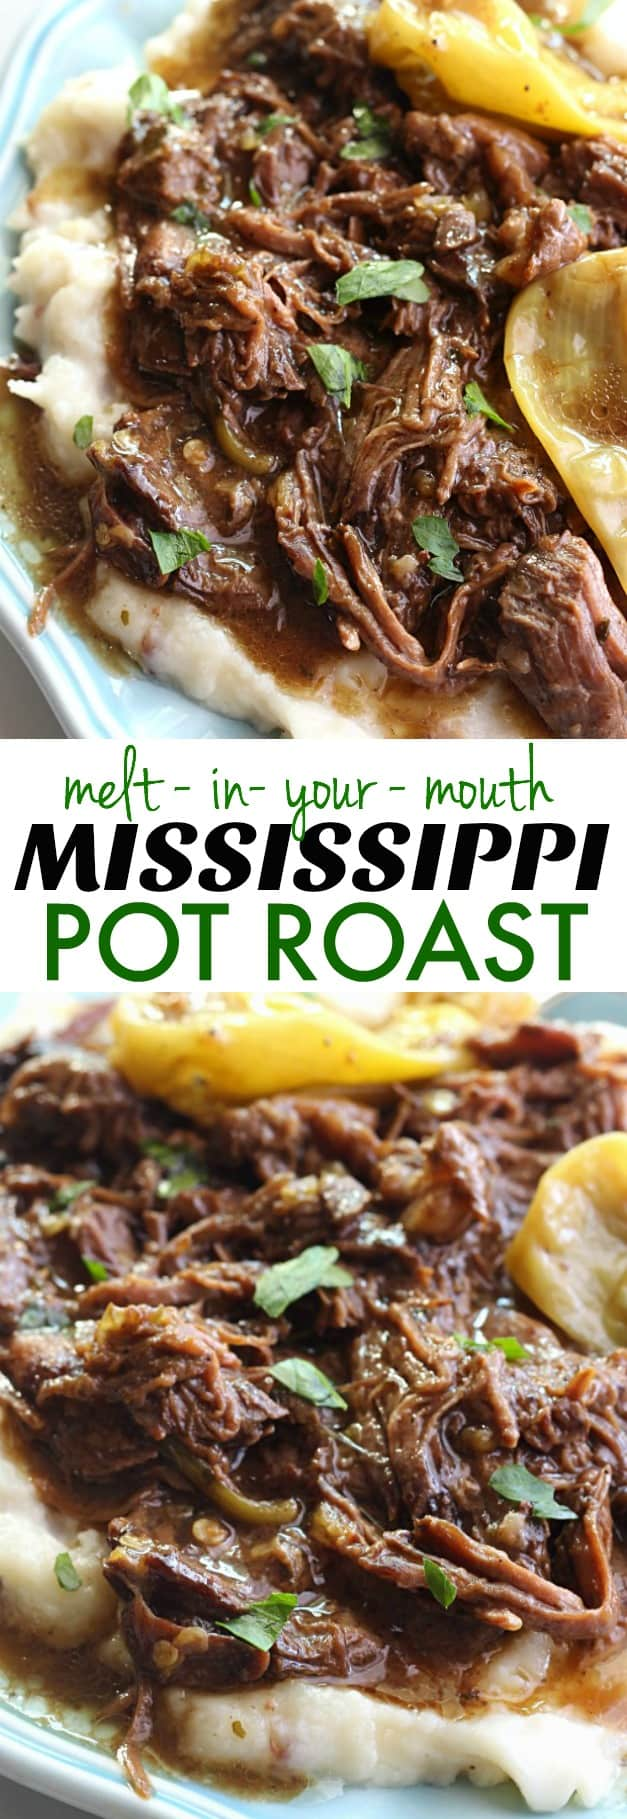 Mississippi Pot Roast - The most delicious pot roast you will EVER eat! Made with just five simple ingredients and slow cooked in the crockpot, you are going to fall in love with this!